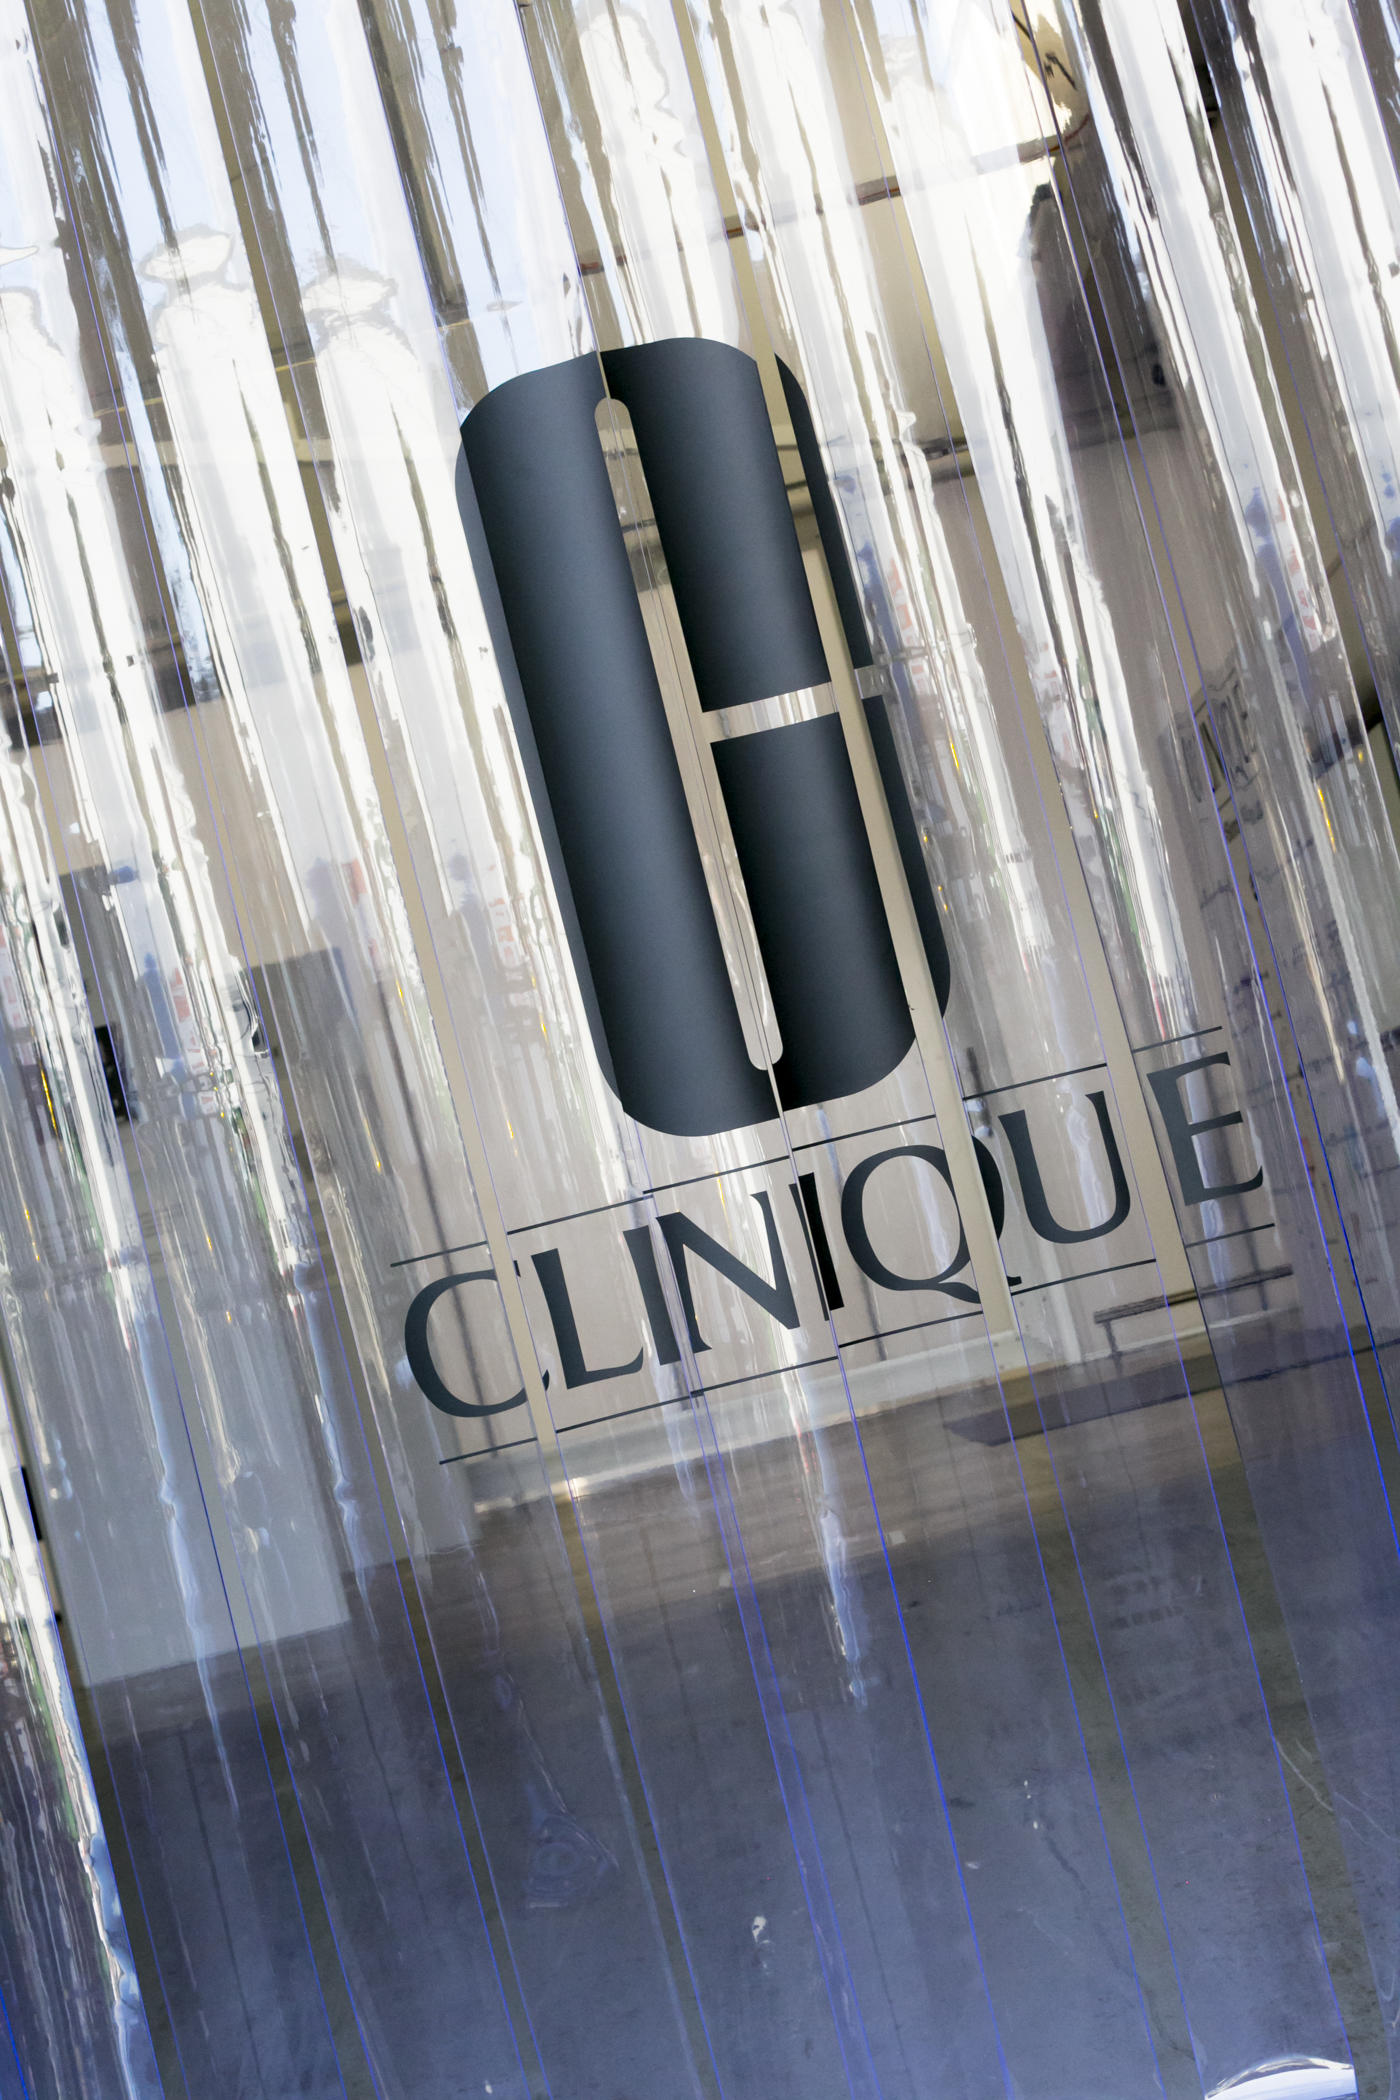 Event Space for Hire Sydney. Photo of PVC strips with Clinique Logo